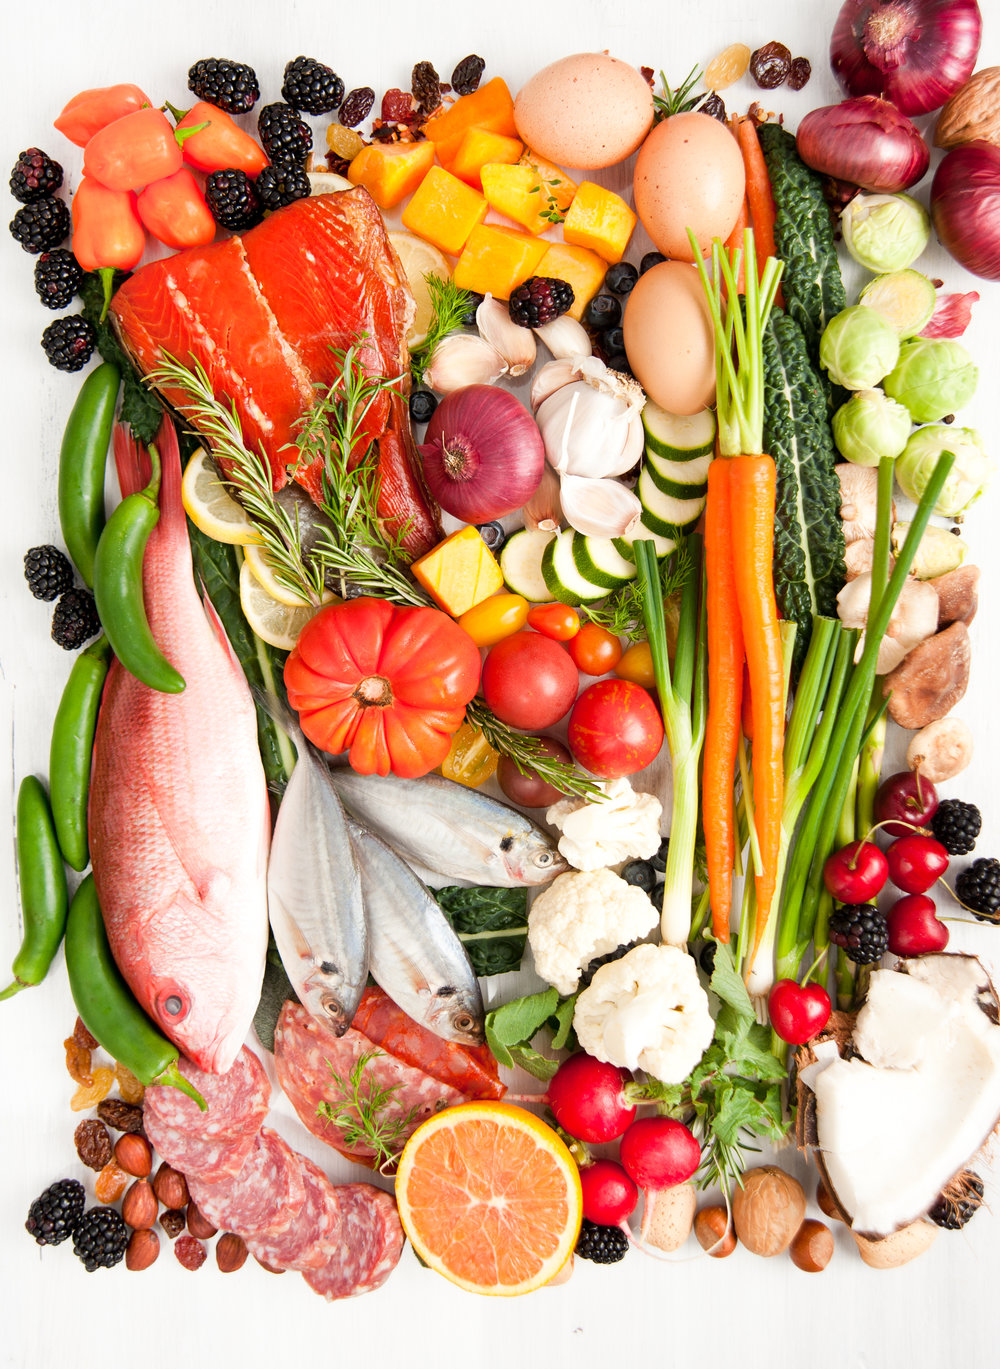 Paleo/Primal - The Paleo way of eating excludes grains, processed foods, beans, dairy, and potatoes. Primal usually includes raw or unprocessed dairy.